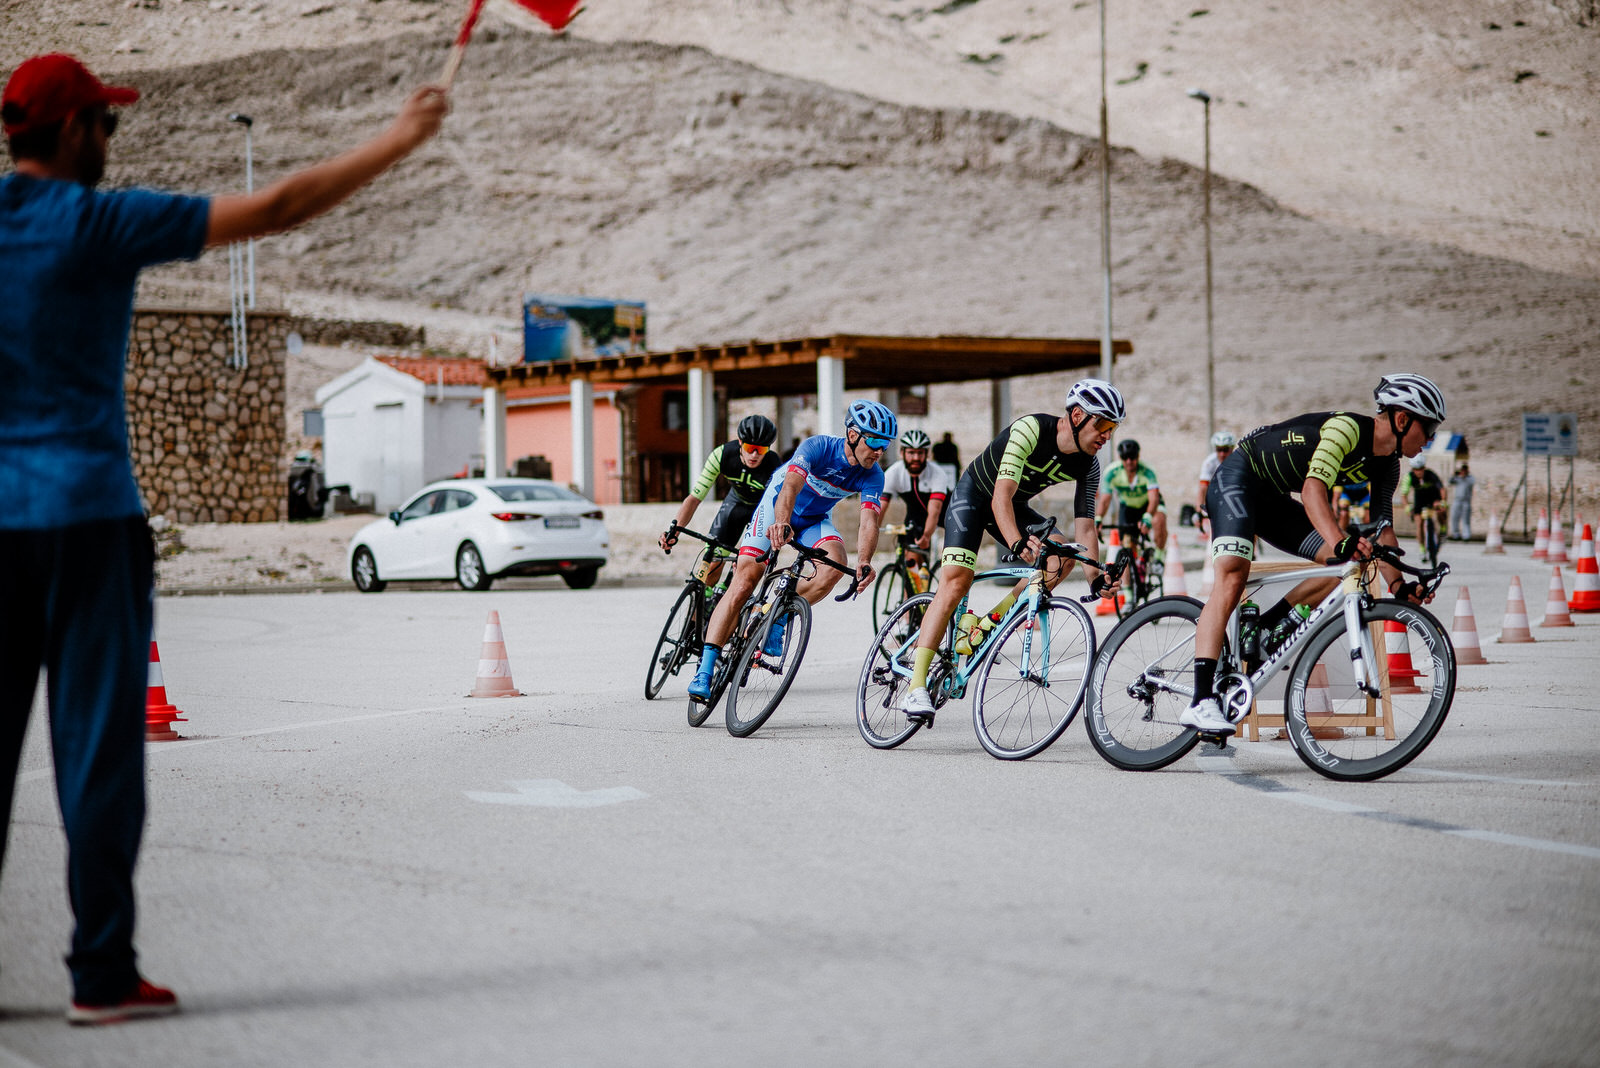 likaclub_Granfondo-Pag-–-Cycling-on-the-Moon_2019-17